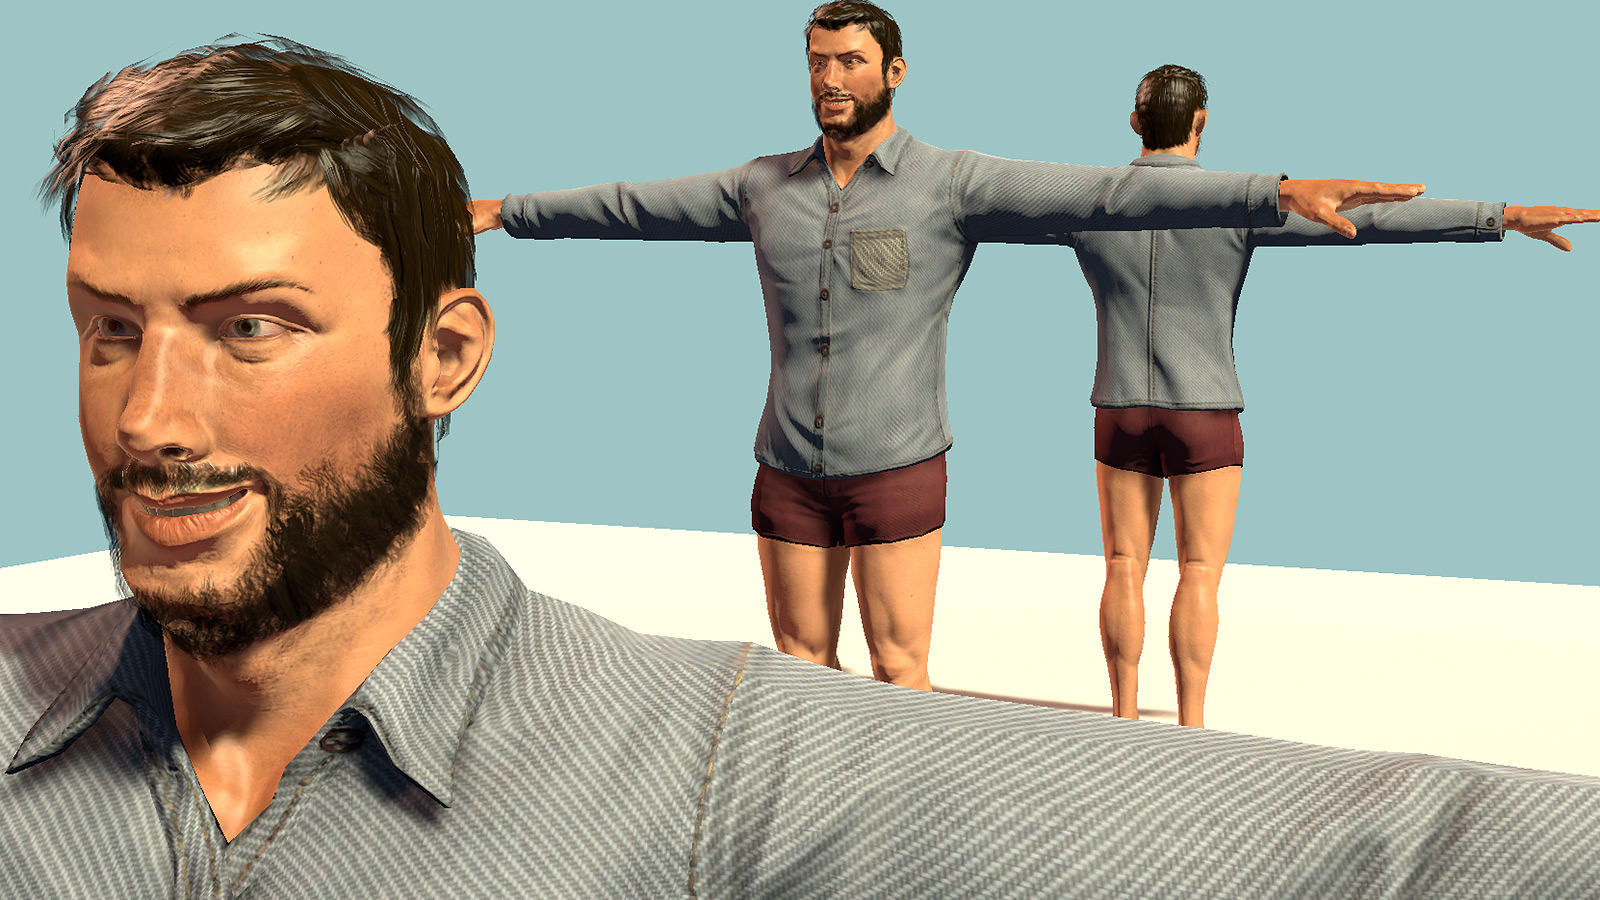 radiator blog psa free and complete photorealistic 3d character